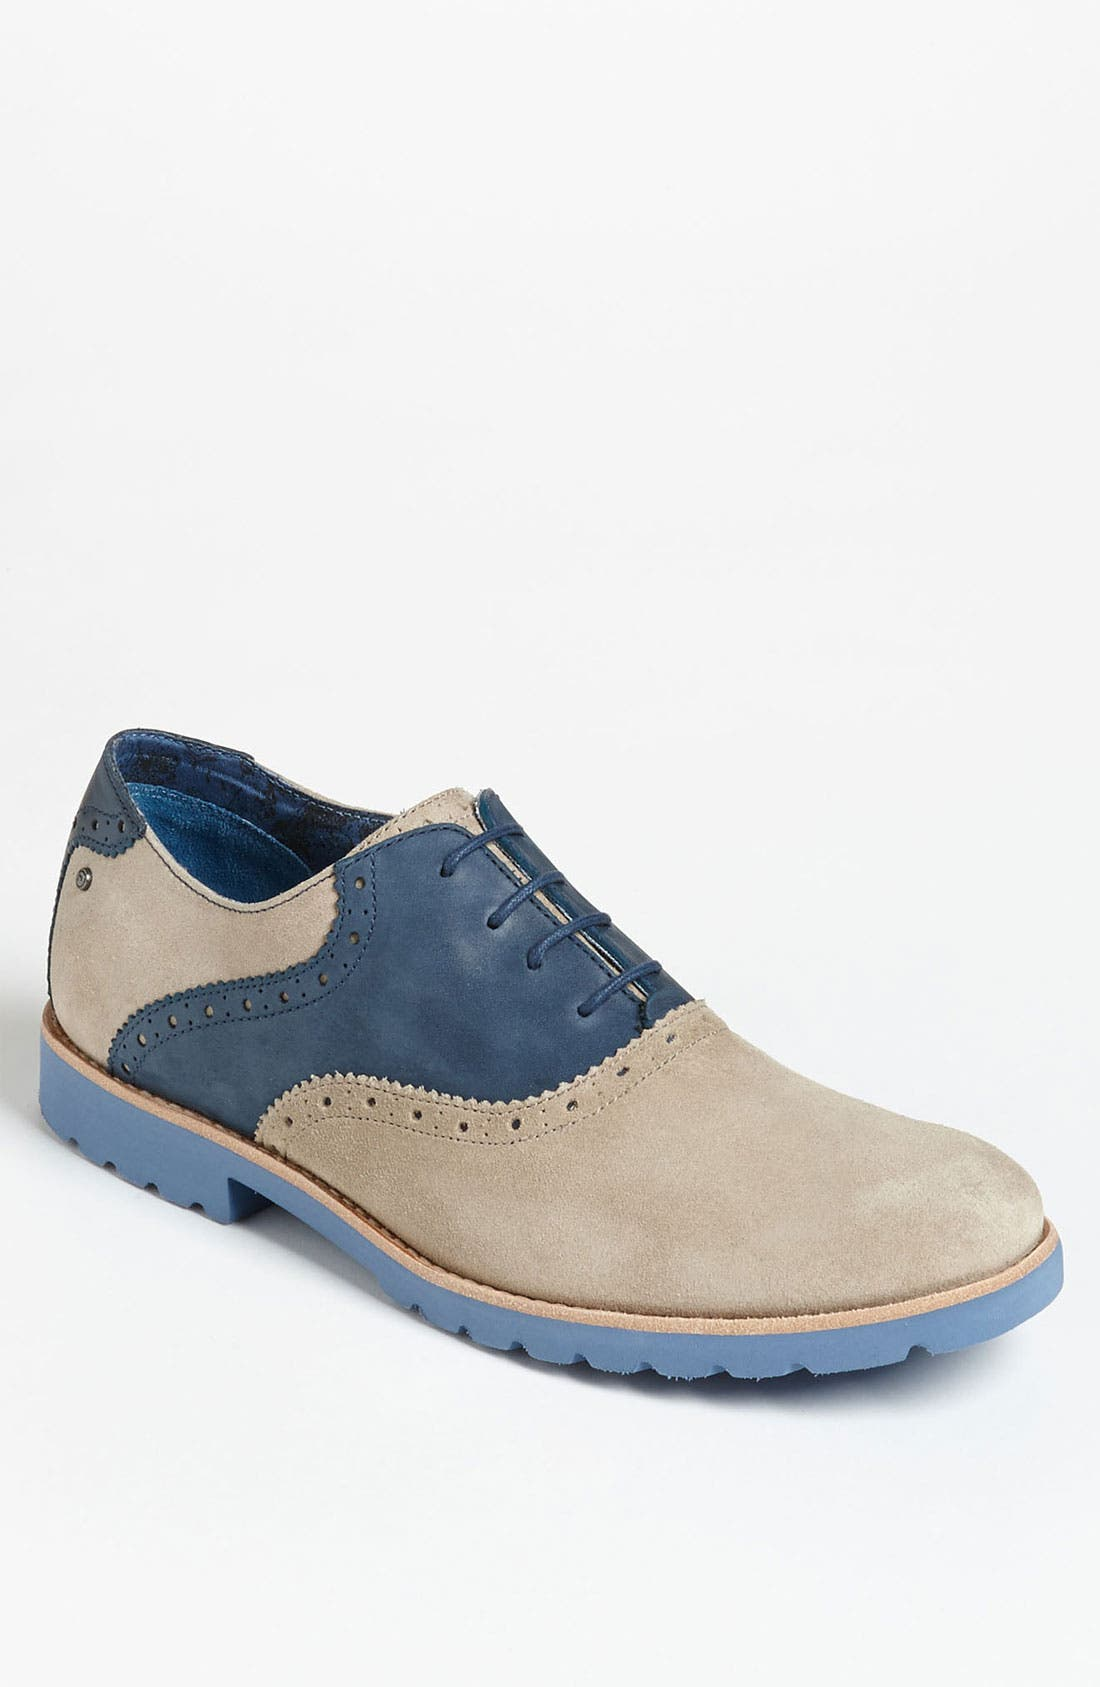 Alternate Image 1 Selected - Rockport 'Ledge Hill' Saddle Shoe